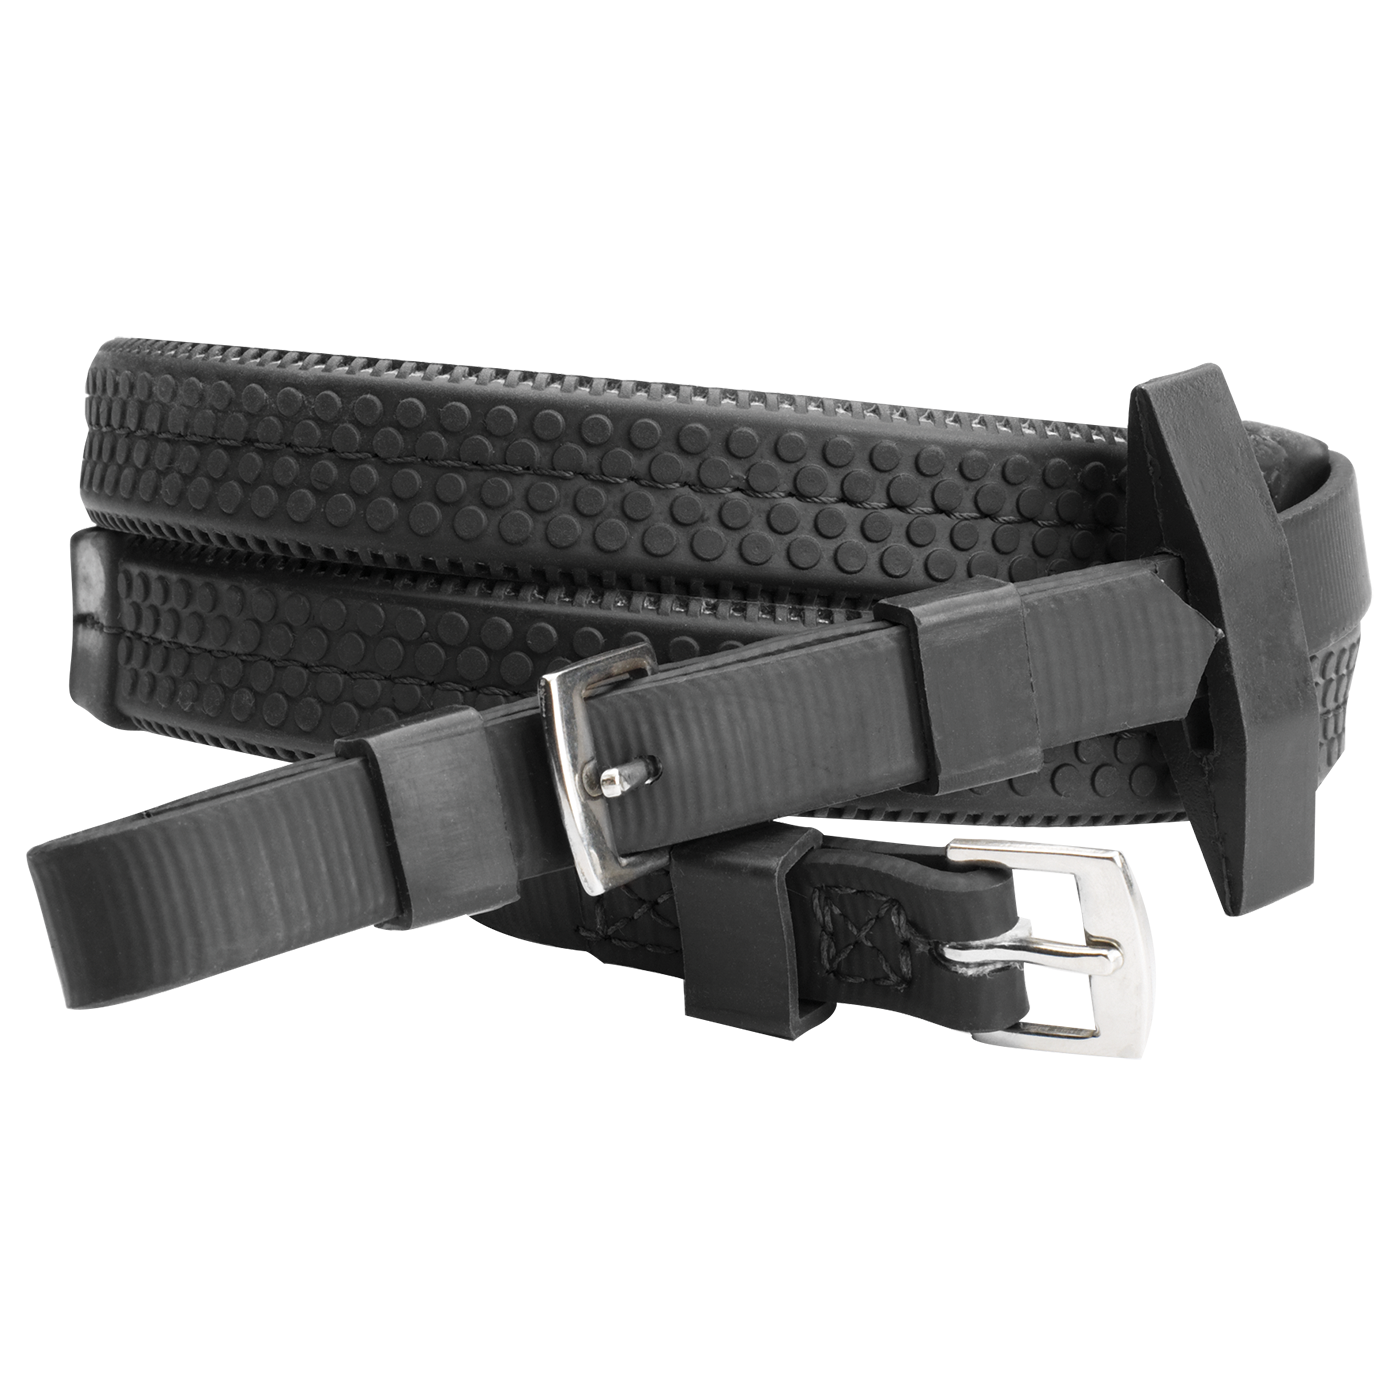 Wintec Rubber Grip Reins - 331:31024684662866